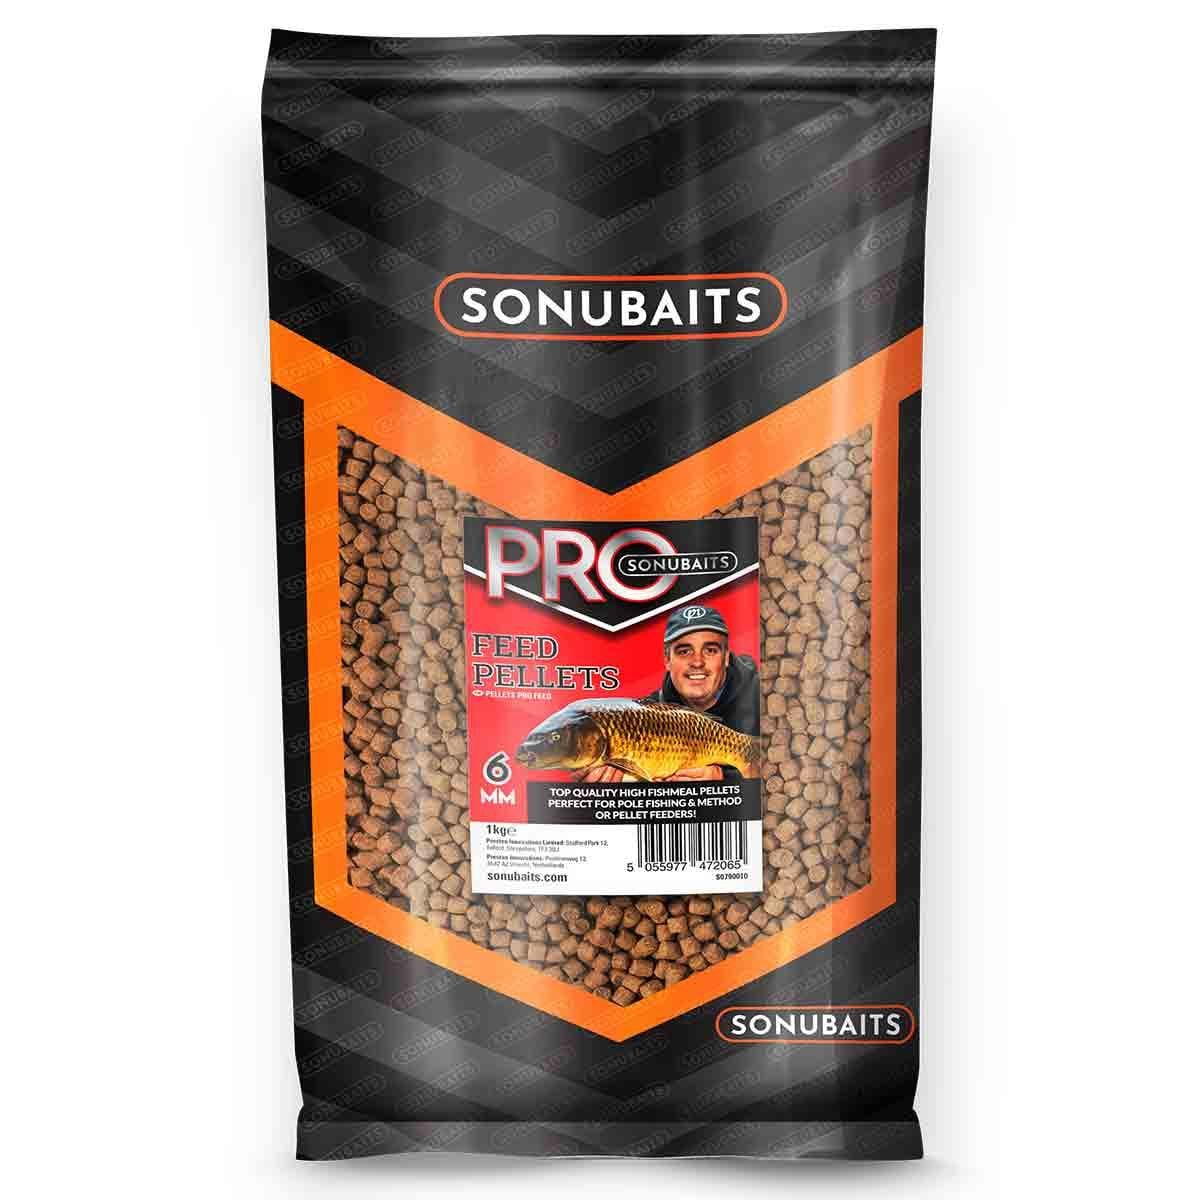 Sonubaits Pro Feed Pellets - 6mm